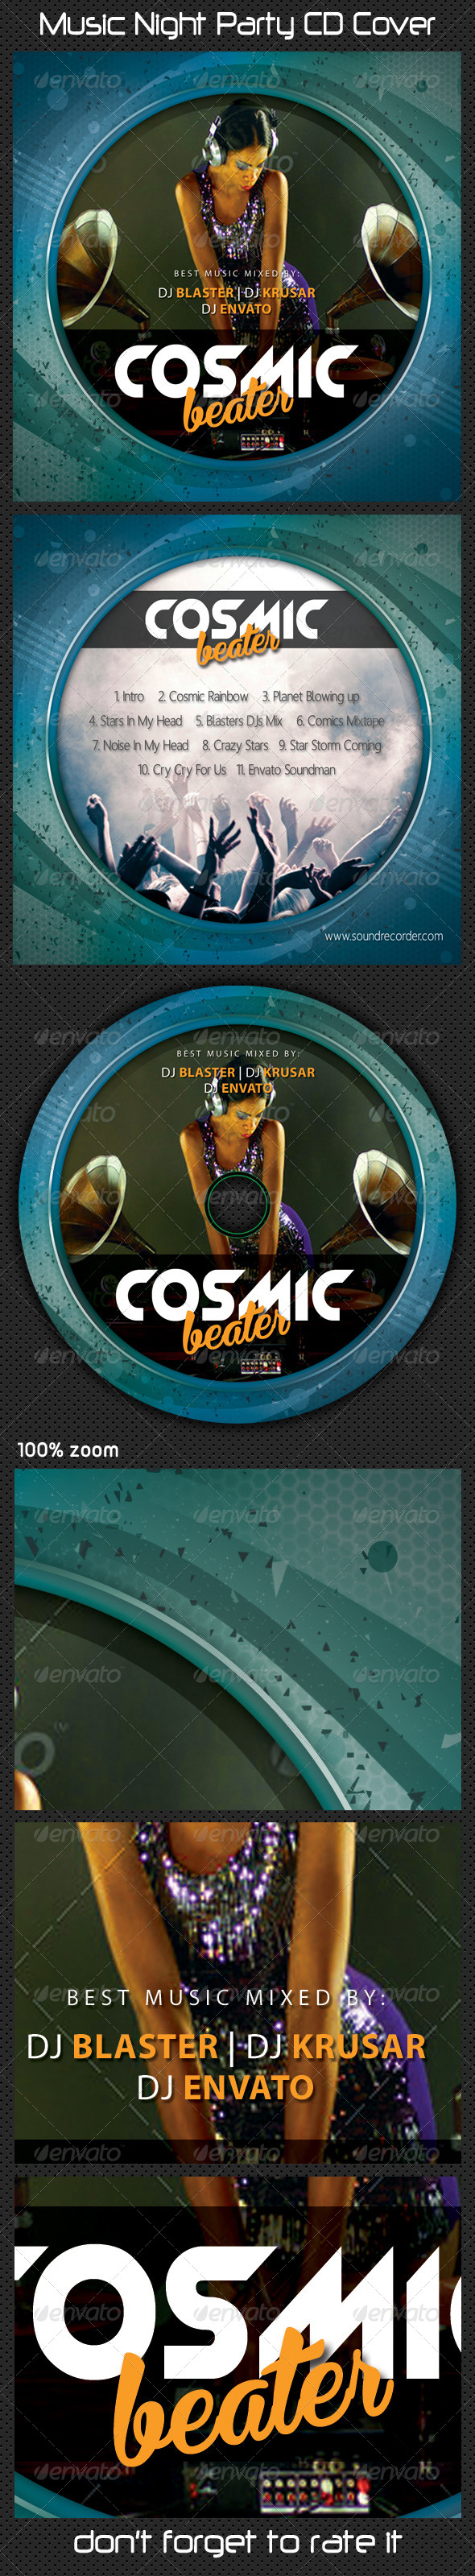 GraphicRiver Music Night Party CD Cover 07 7777224